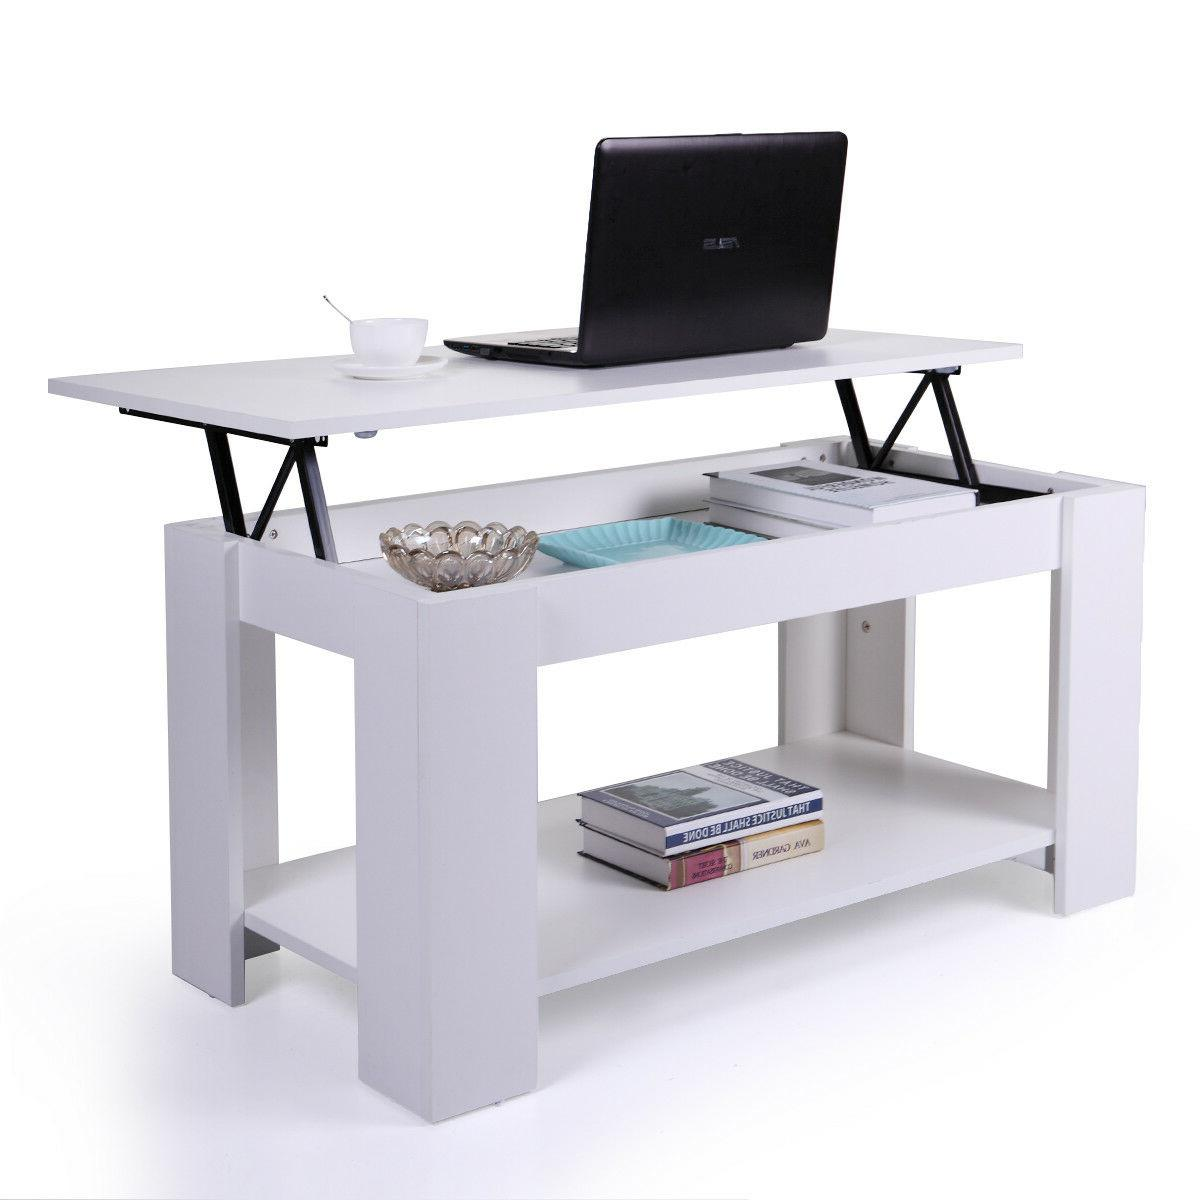 White Coffee Table Lift Top Storage Shelves Wood Living Room